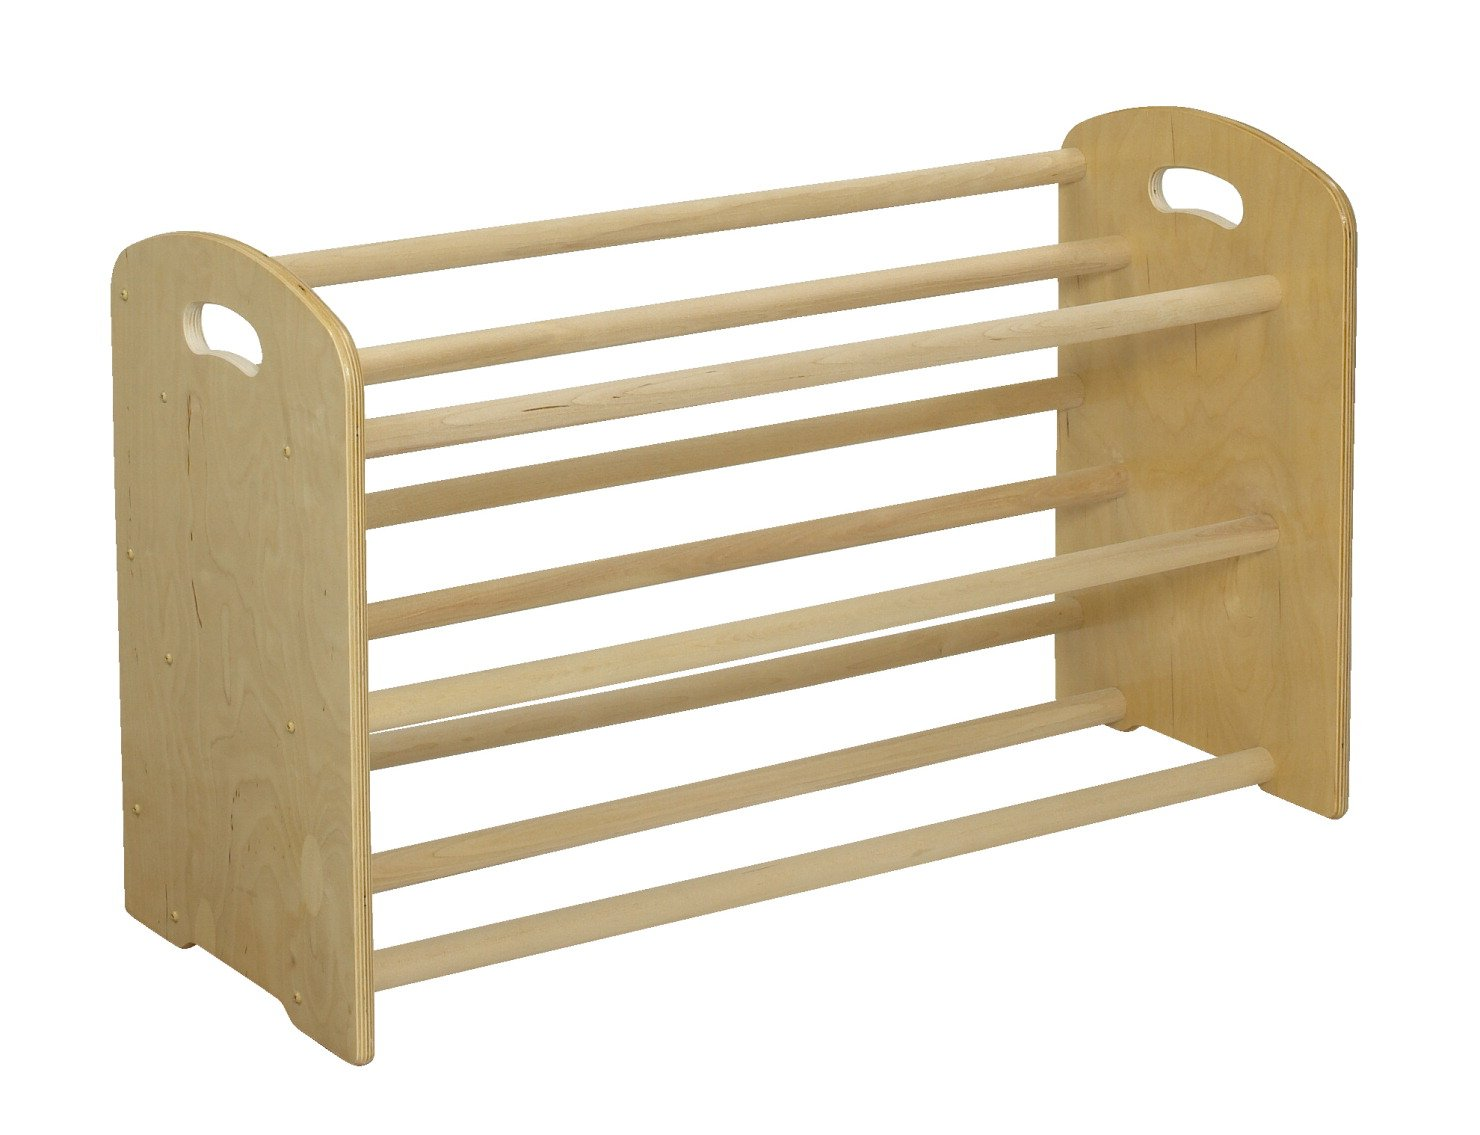 Childcraft ABC Furnishings 12 Tray Dowel Cubby Rack, 35-3/4 x 14-1/2 x 21-3/4 inches